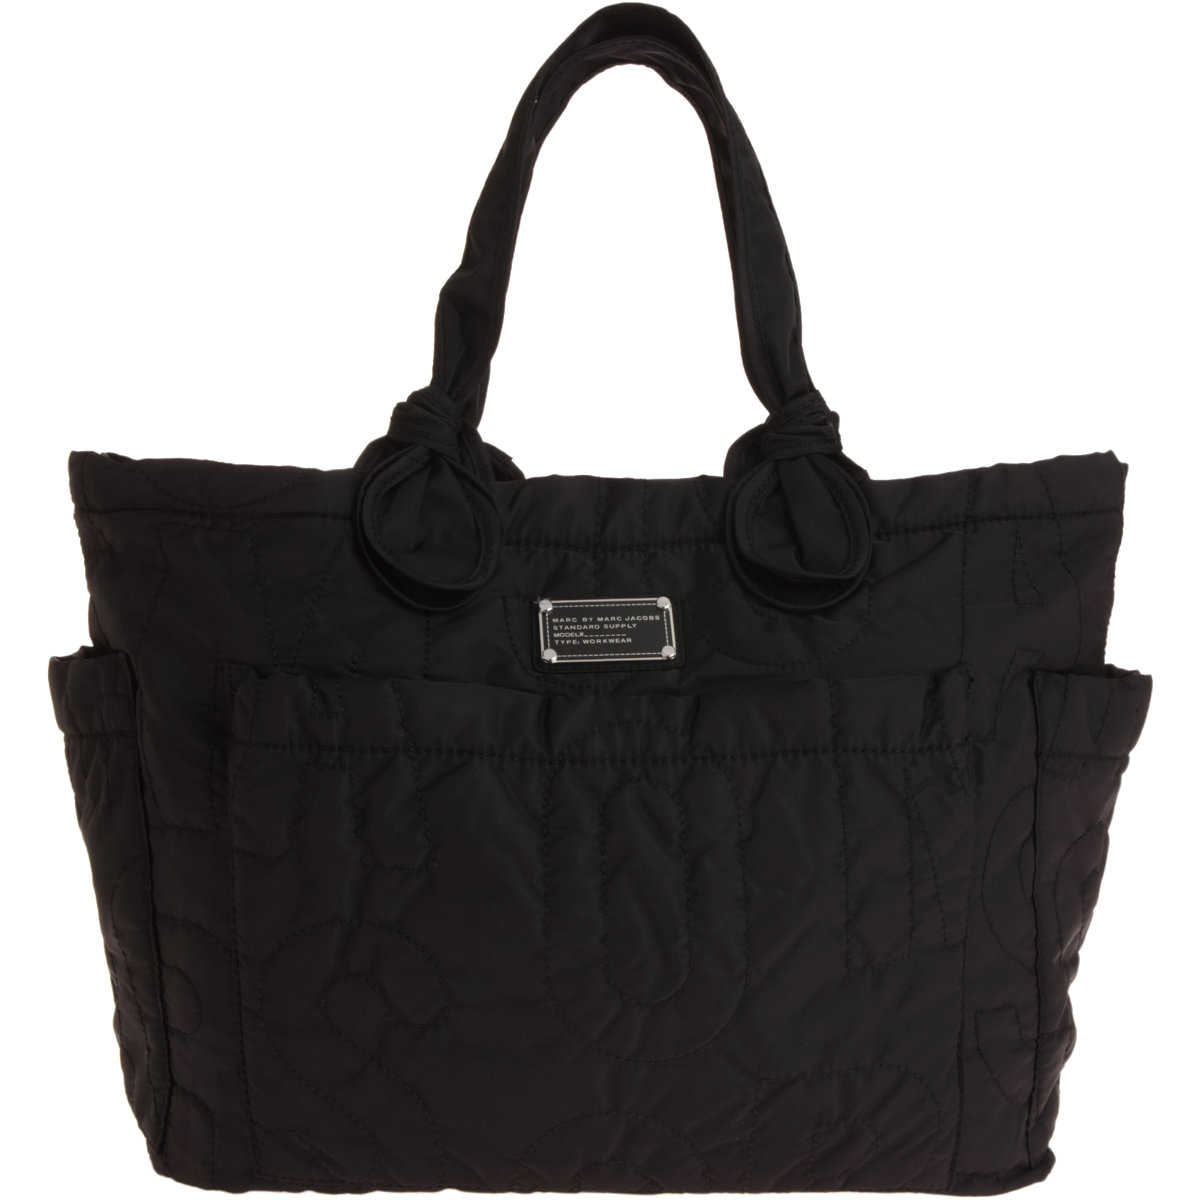 marc jacobs preppy eliz a baby diaper bag in black lyst. Black Bedroom Furniture Sets. Home Design Ideas